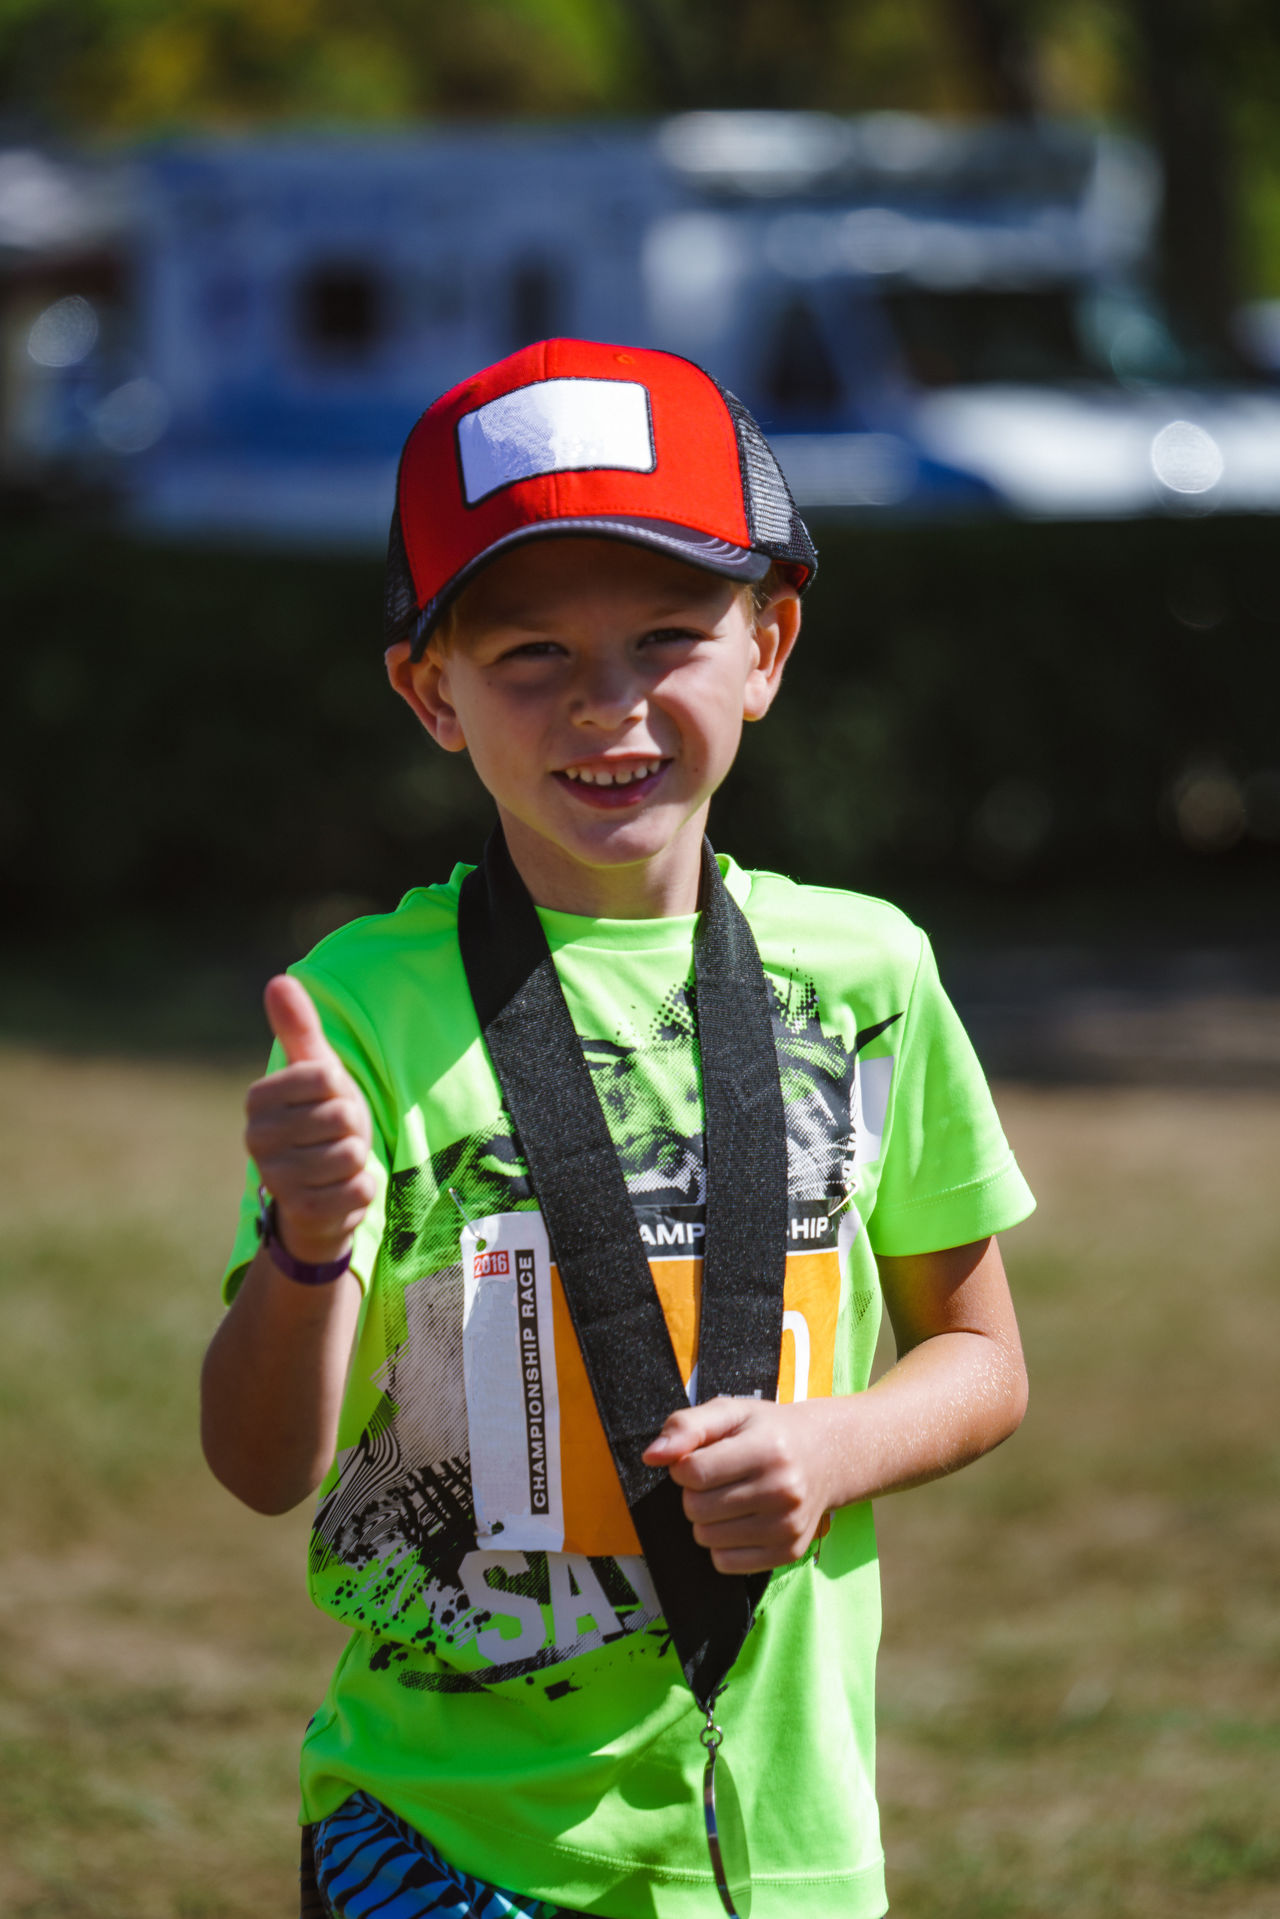 Young boy winning the race wearing his new medal on a beautiful sunny day Child Childhood Children Only Competing Competitor Day Front View Happy Lifestyle Lifestyles Medal One Person Outdoors Outdoors Photograpghy  People Smiling Sport Success Sunny TRIATHLON Trophy Winning